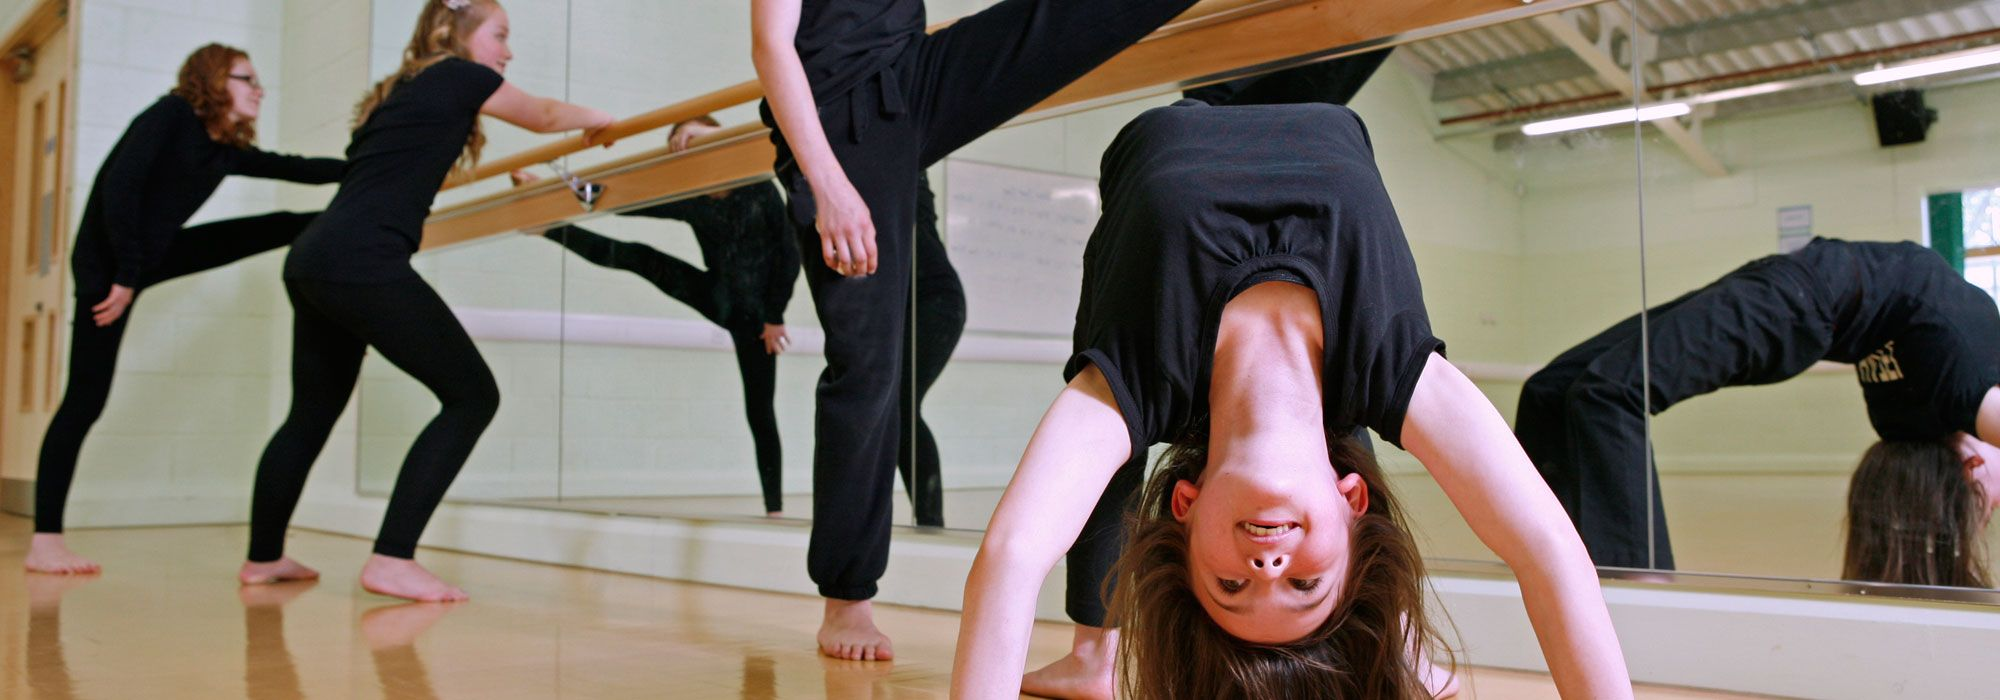 Pupils in dance studio in Wrexham